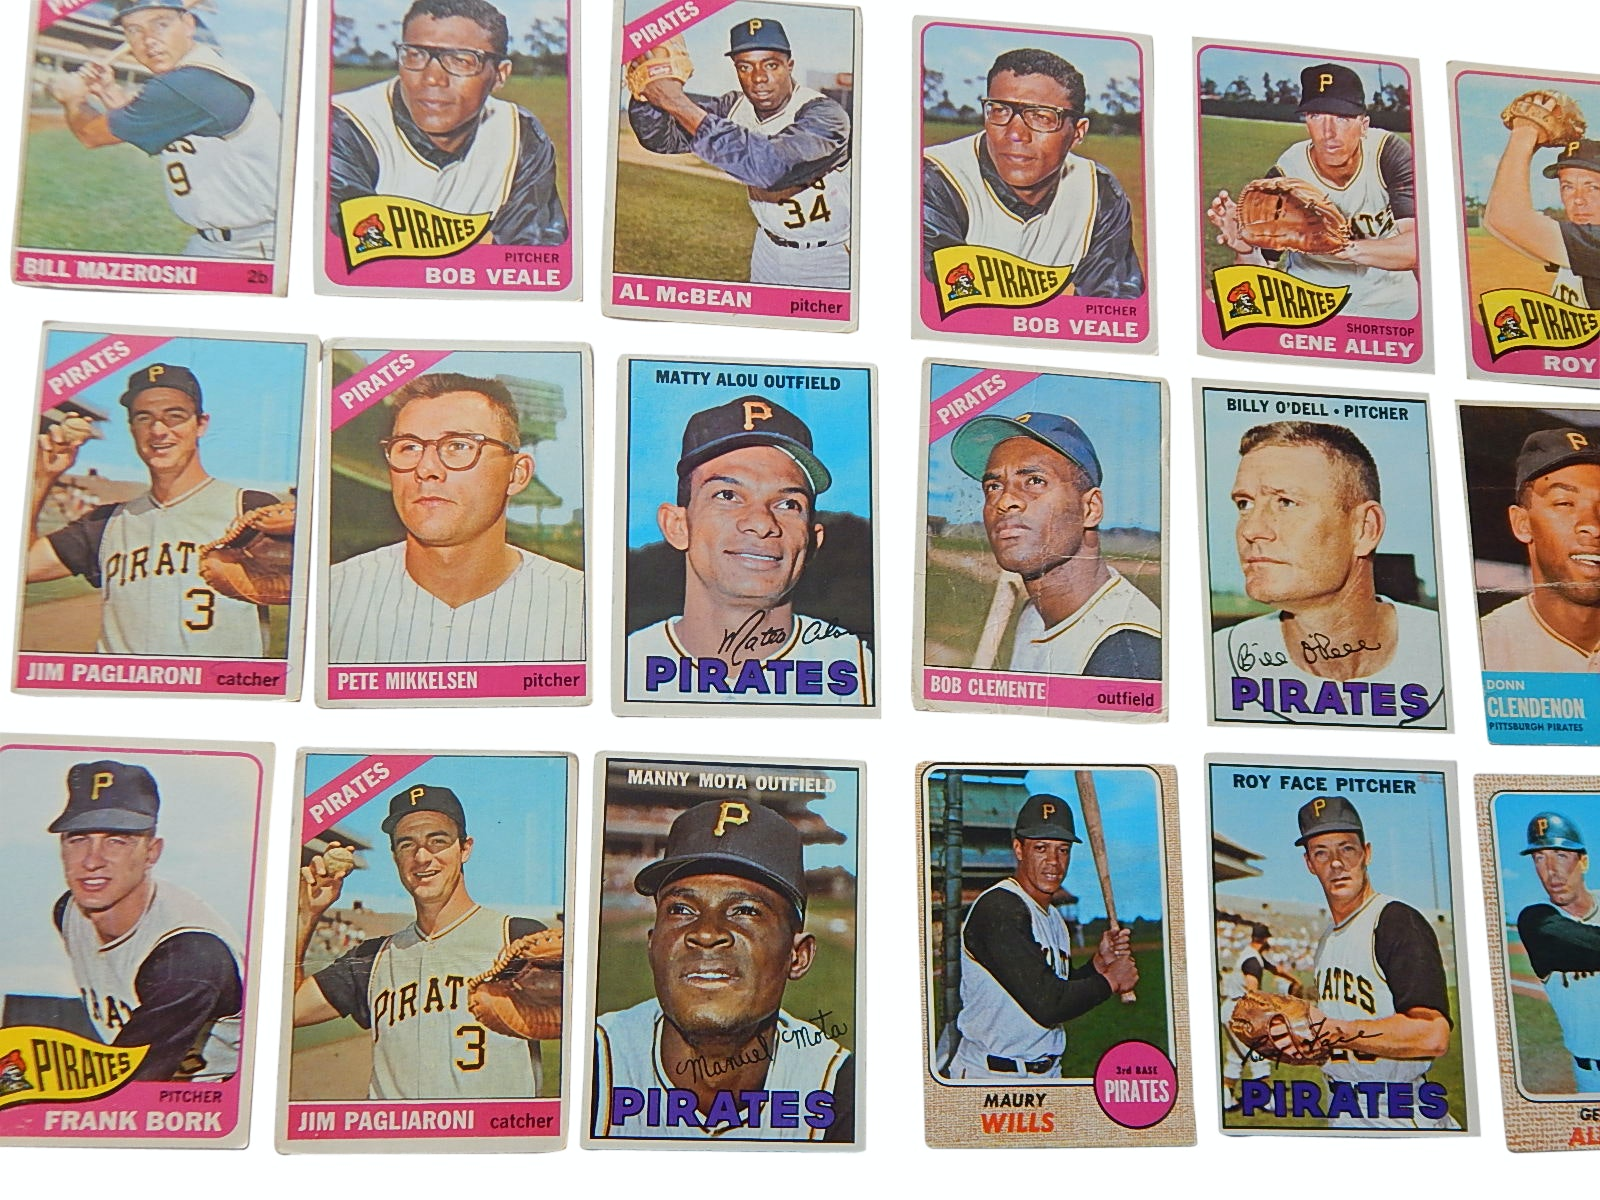 1960s Pittsburgh Pirates Baseball Card Lot with Clemente, Mazeroski, Alou